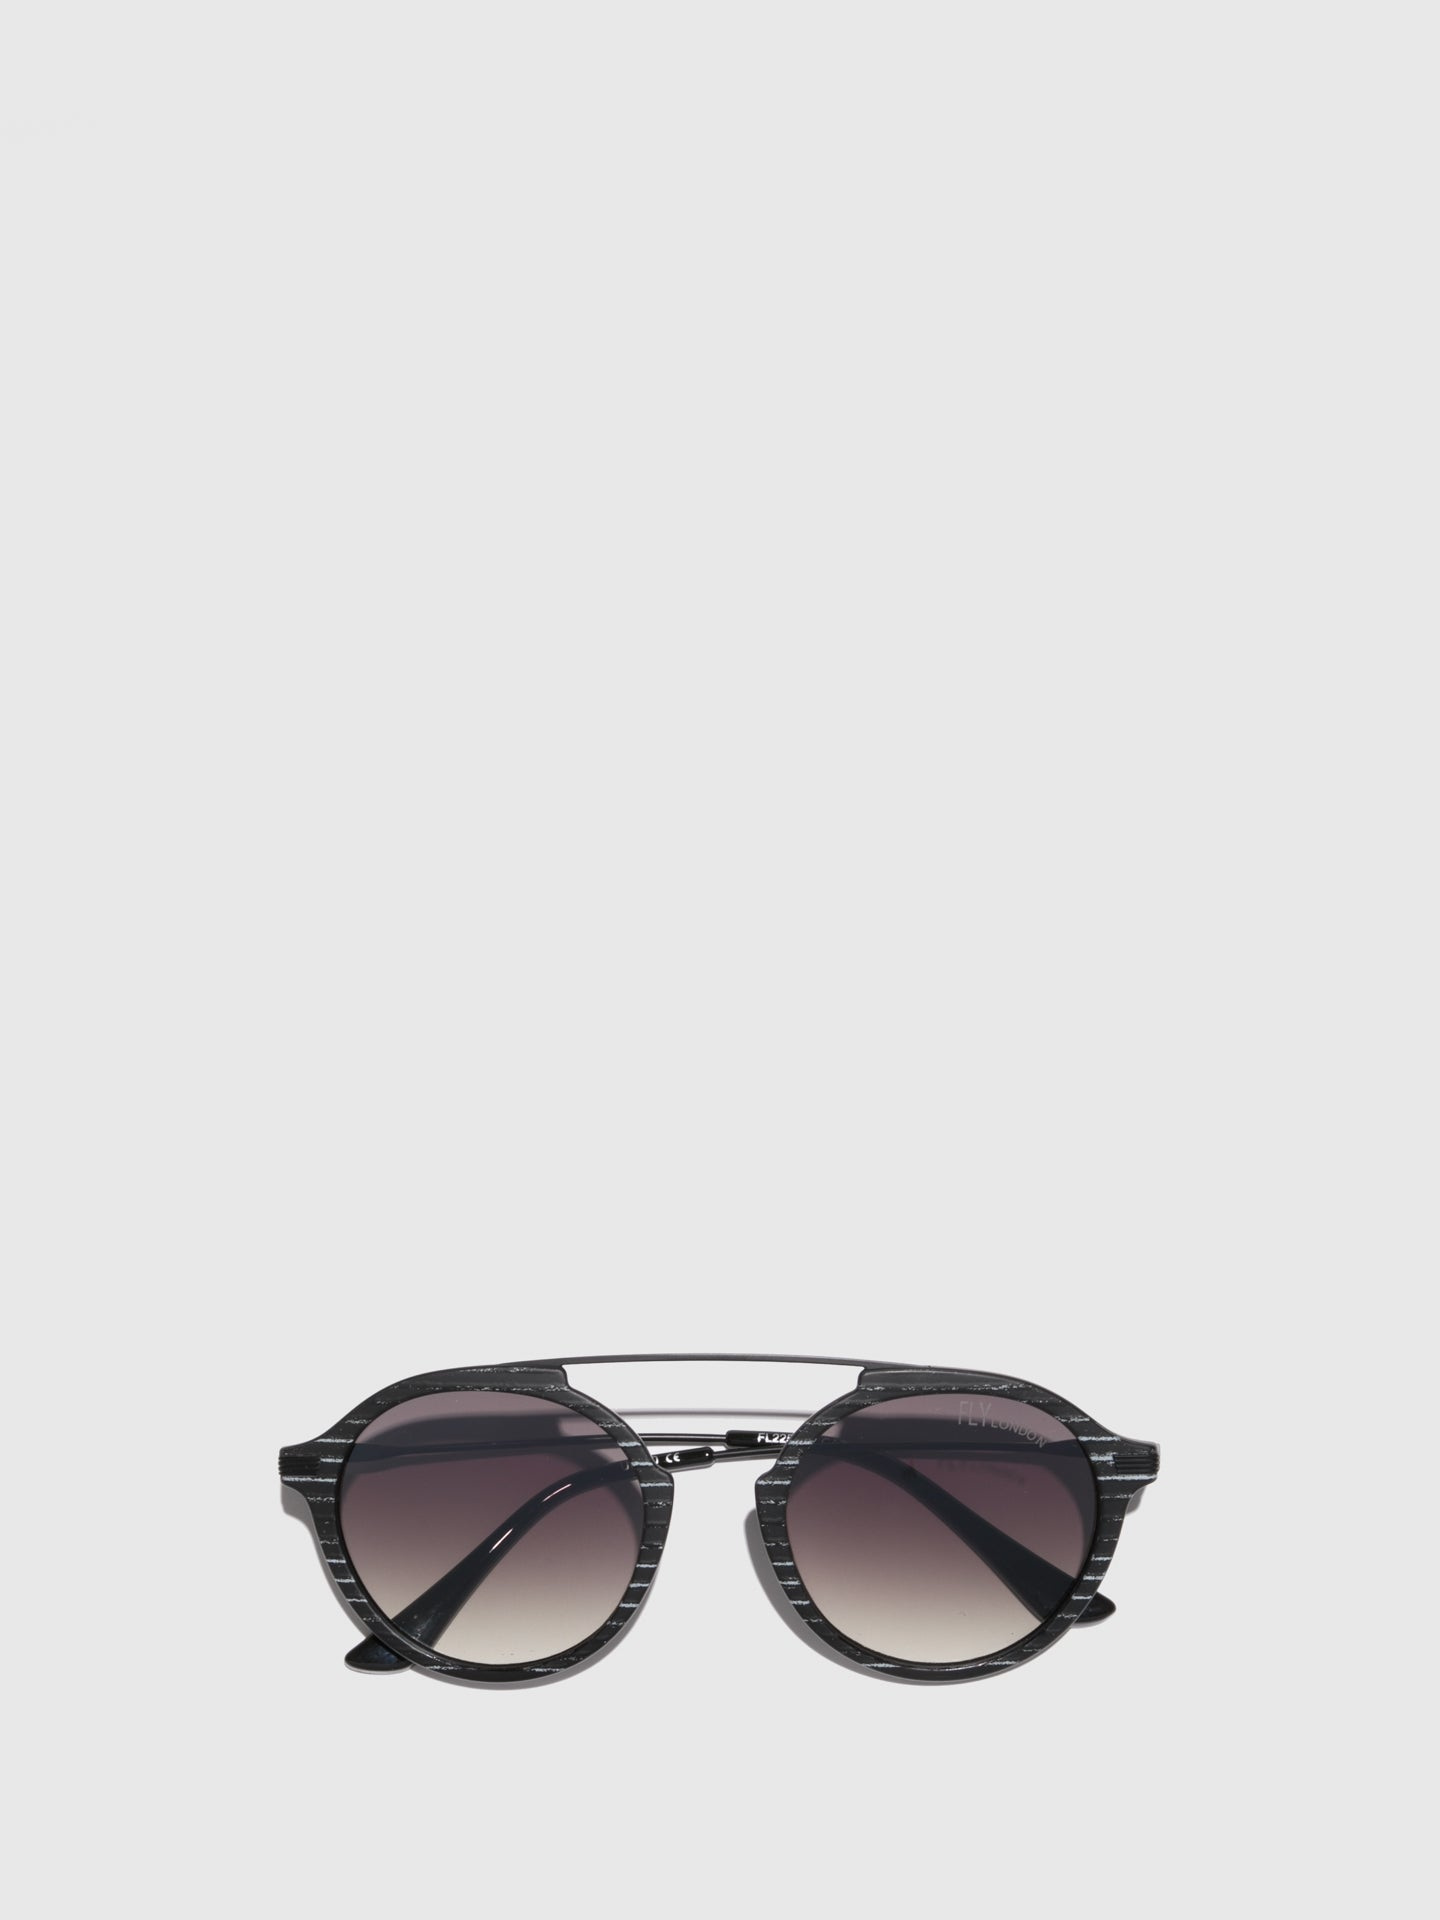 Fly London Black Aviator Sunglasses